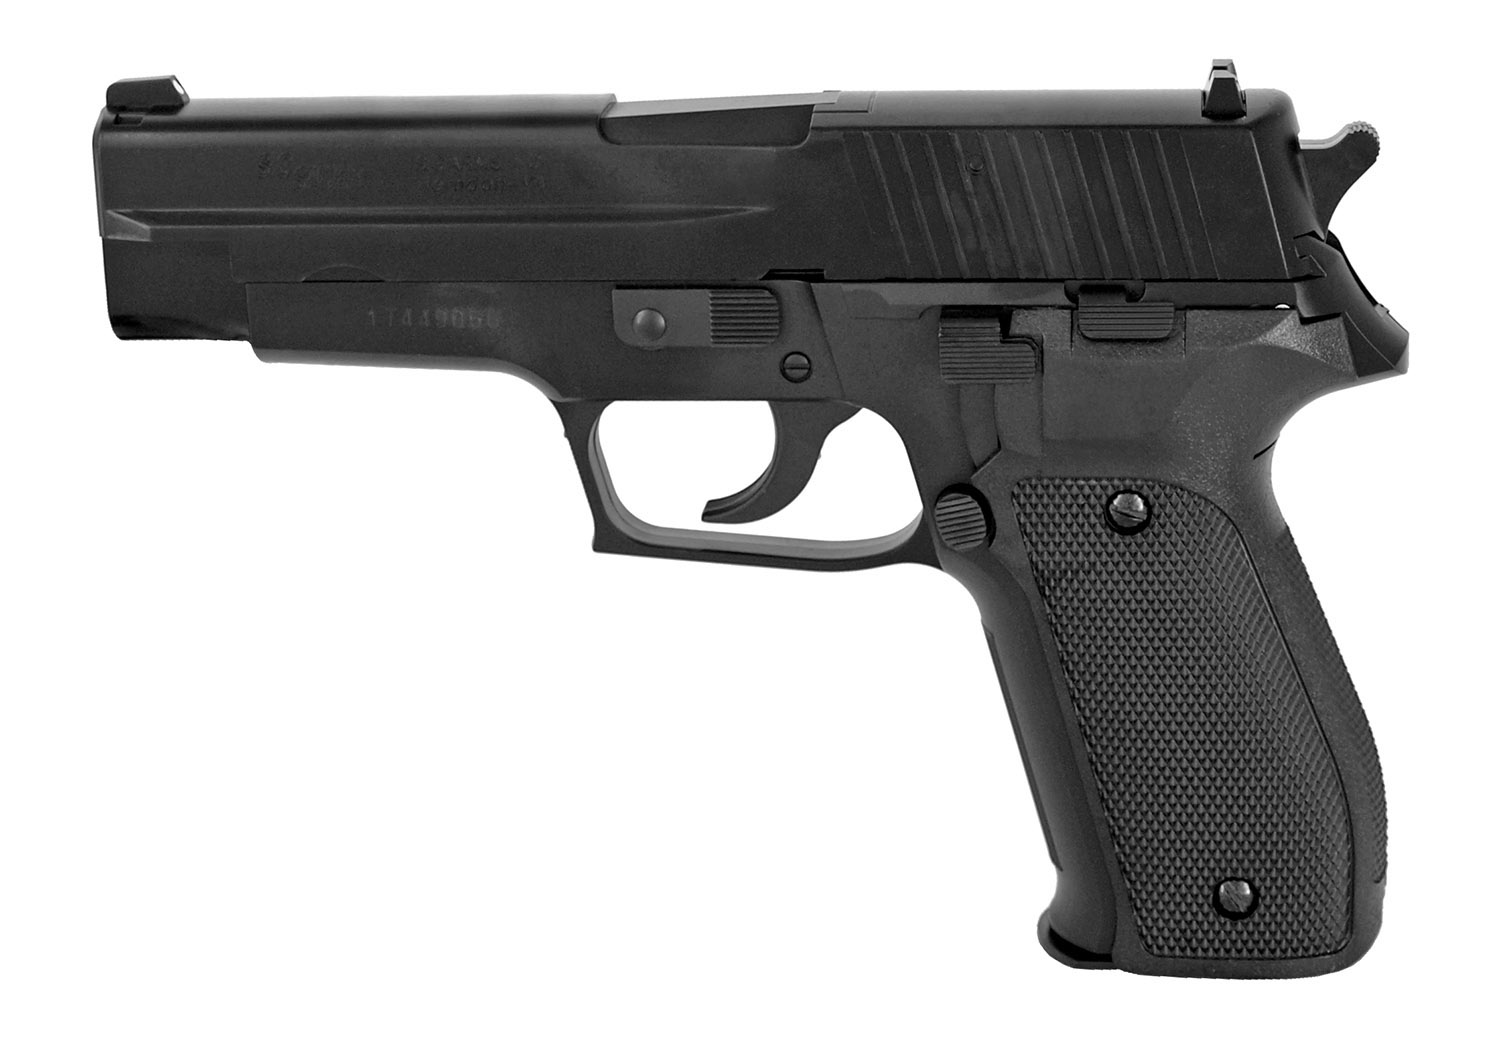 Sig Sauer P226 Spring Powered BB Pistol